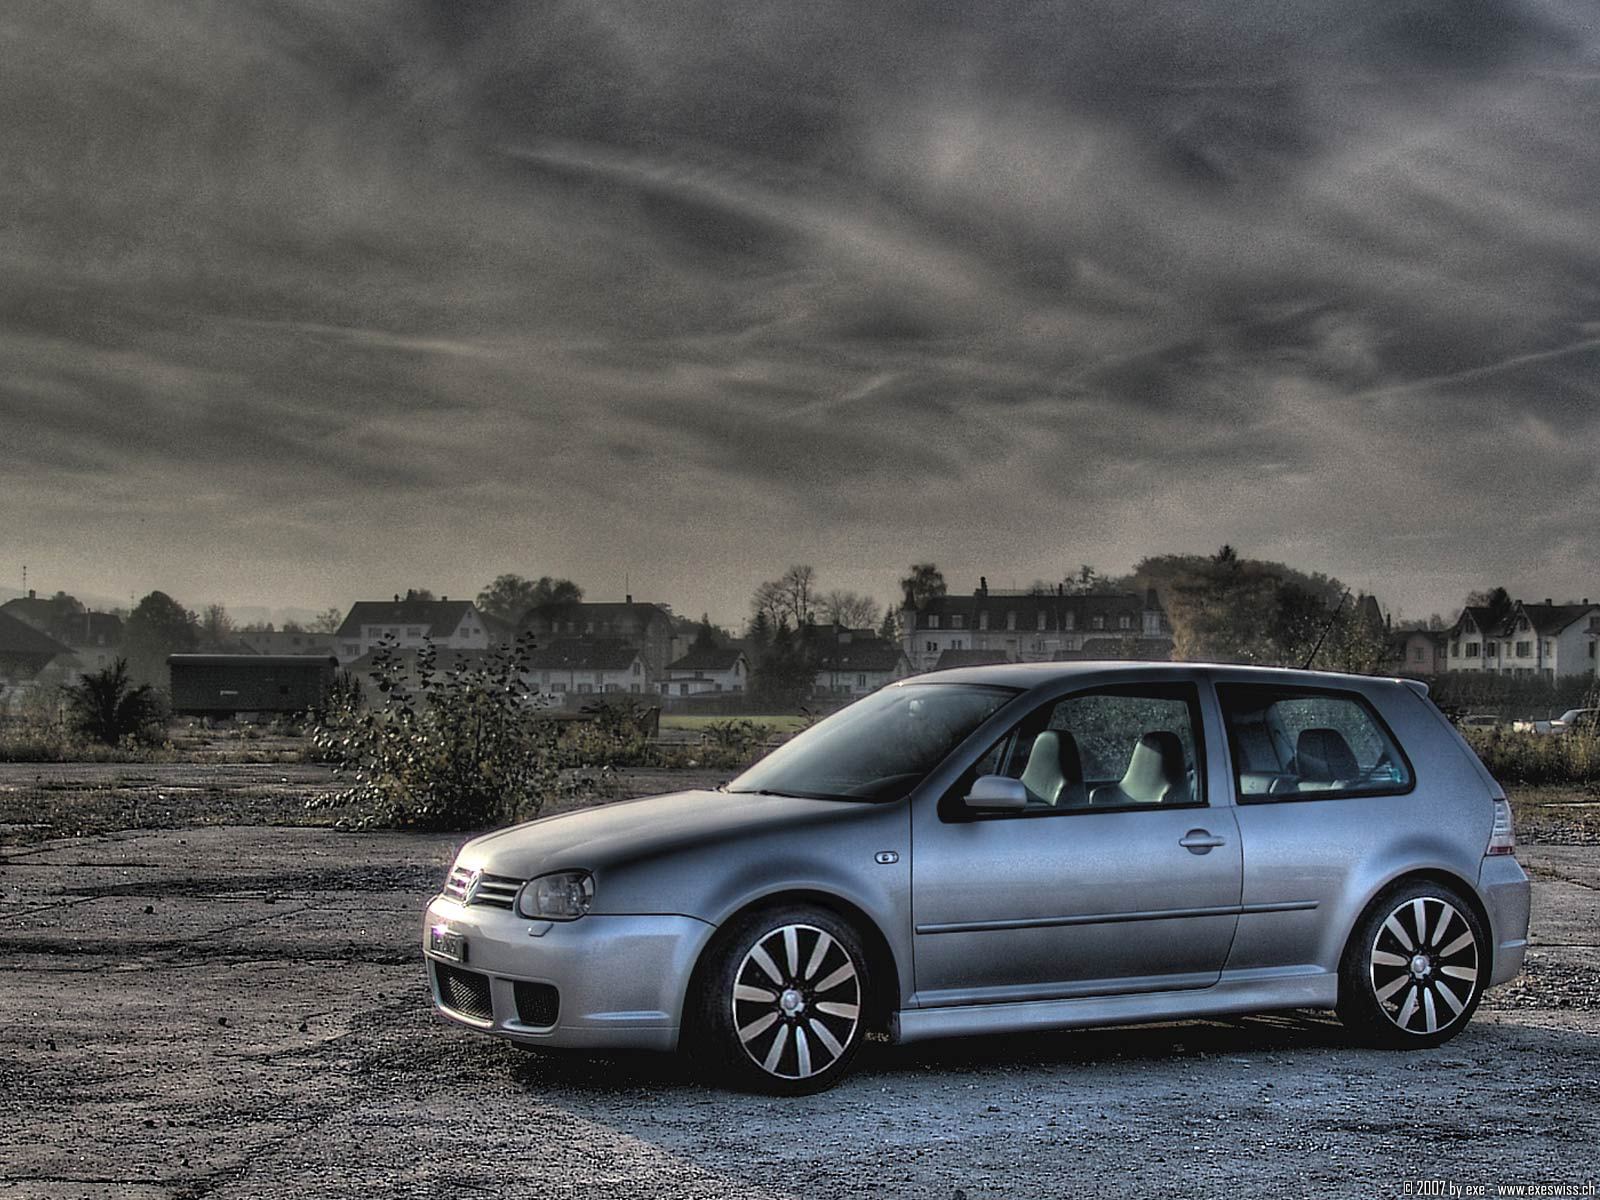 vw golf iv r32 wallpapers vw golf iv r32 stock photos. Black Bedroom Furniture Sets. Home Design Ideas